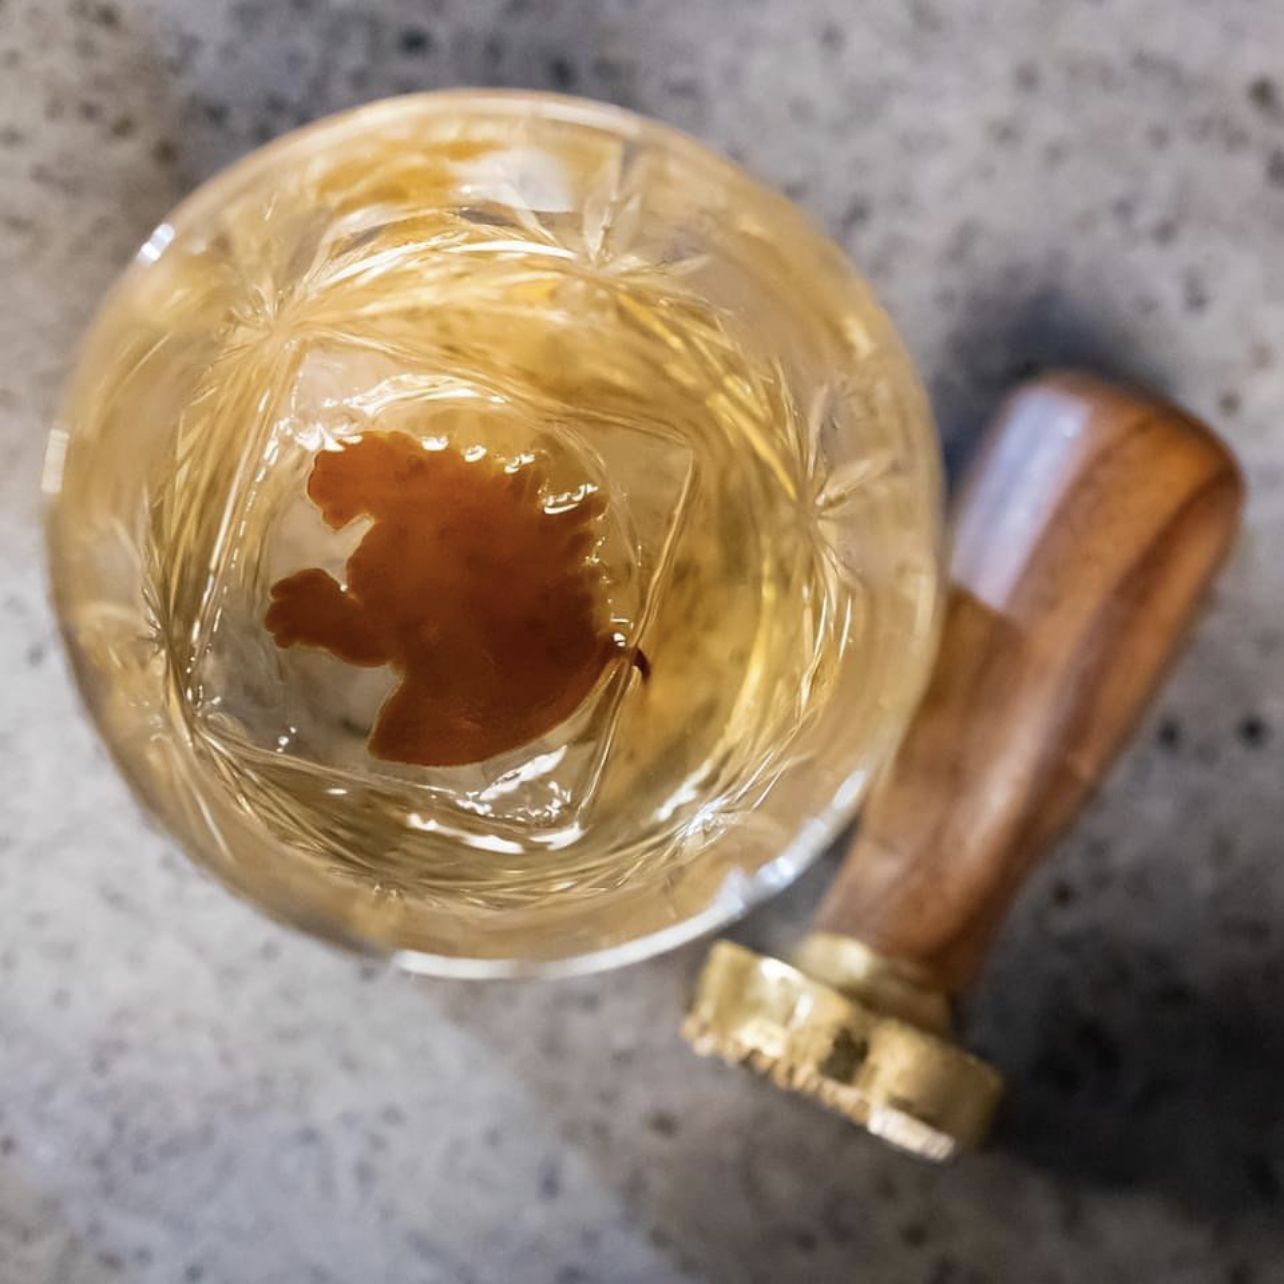 An amber colored cocktail with a letter seal stamper laying next to it